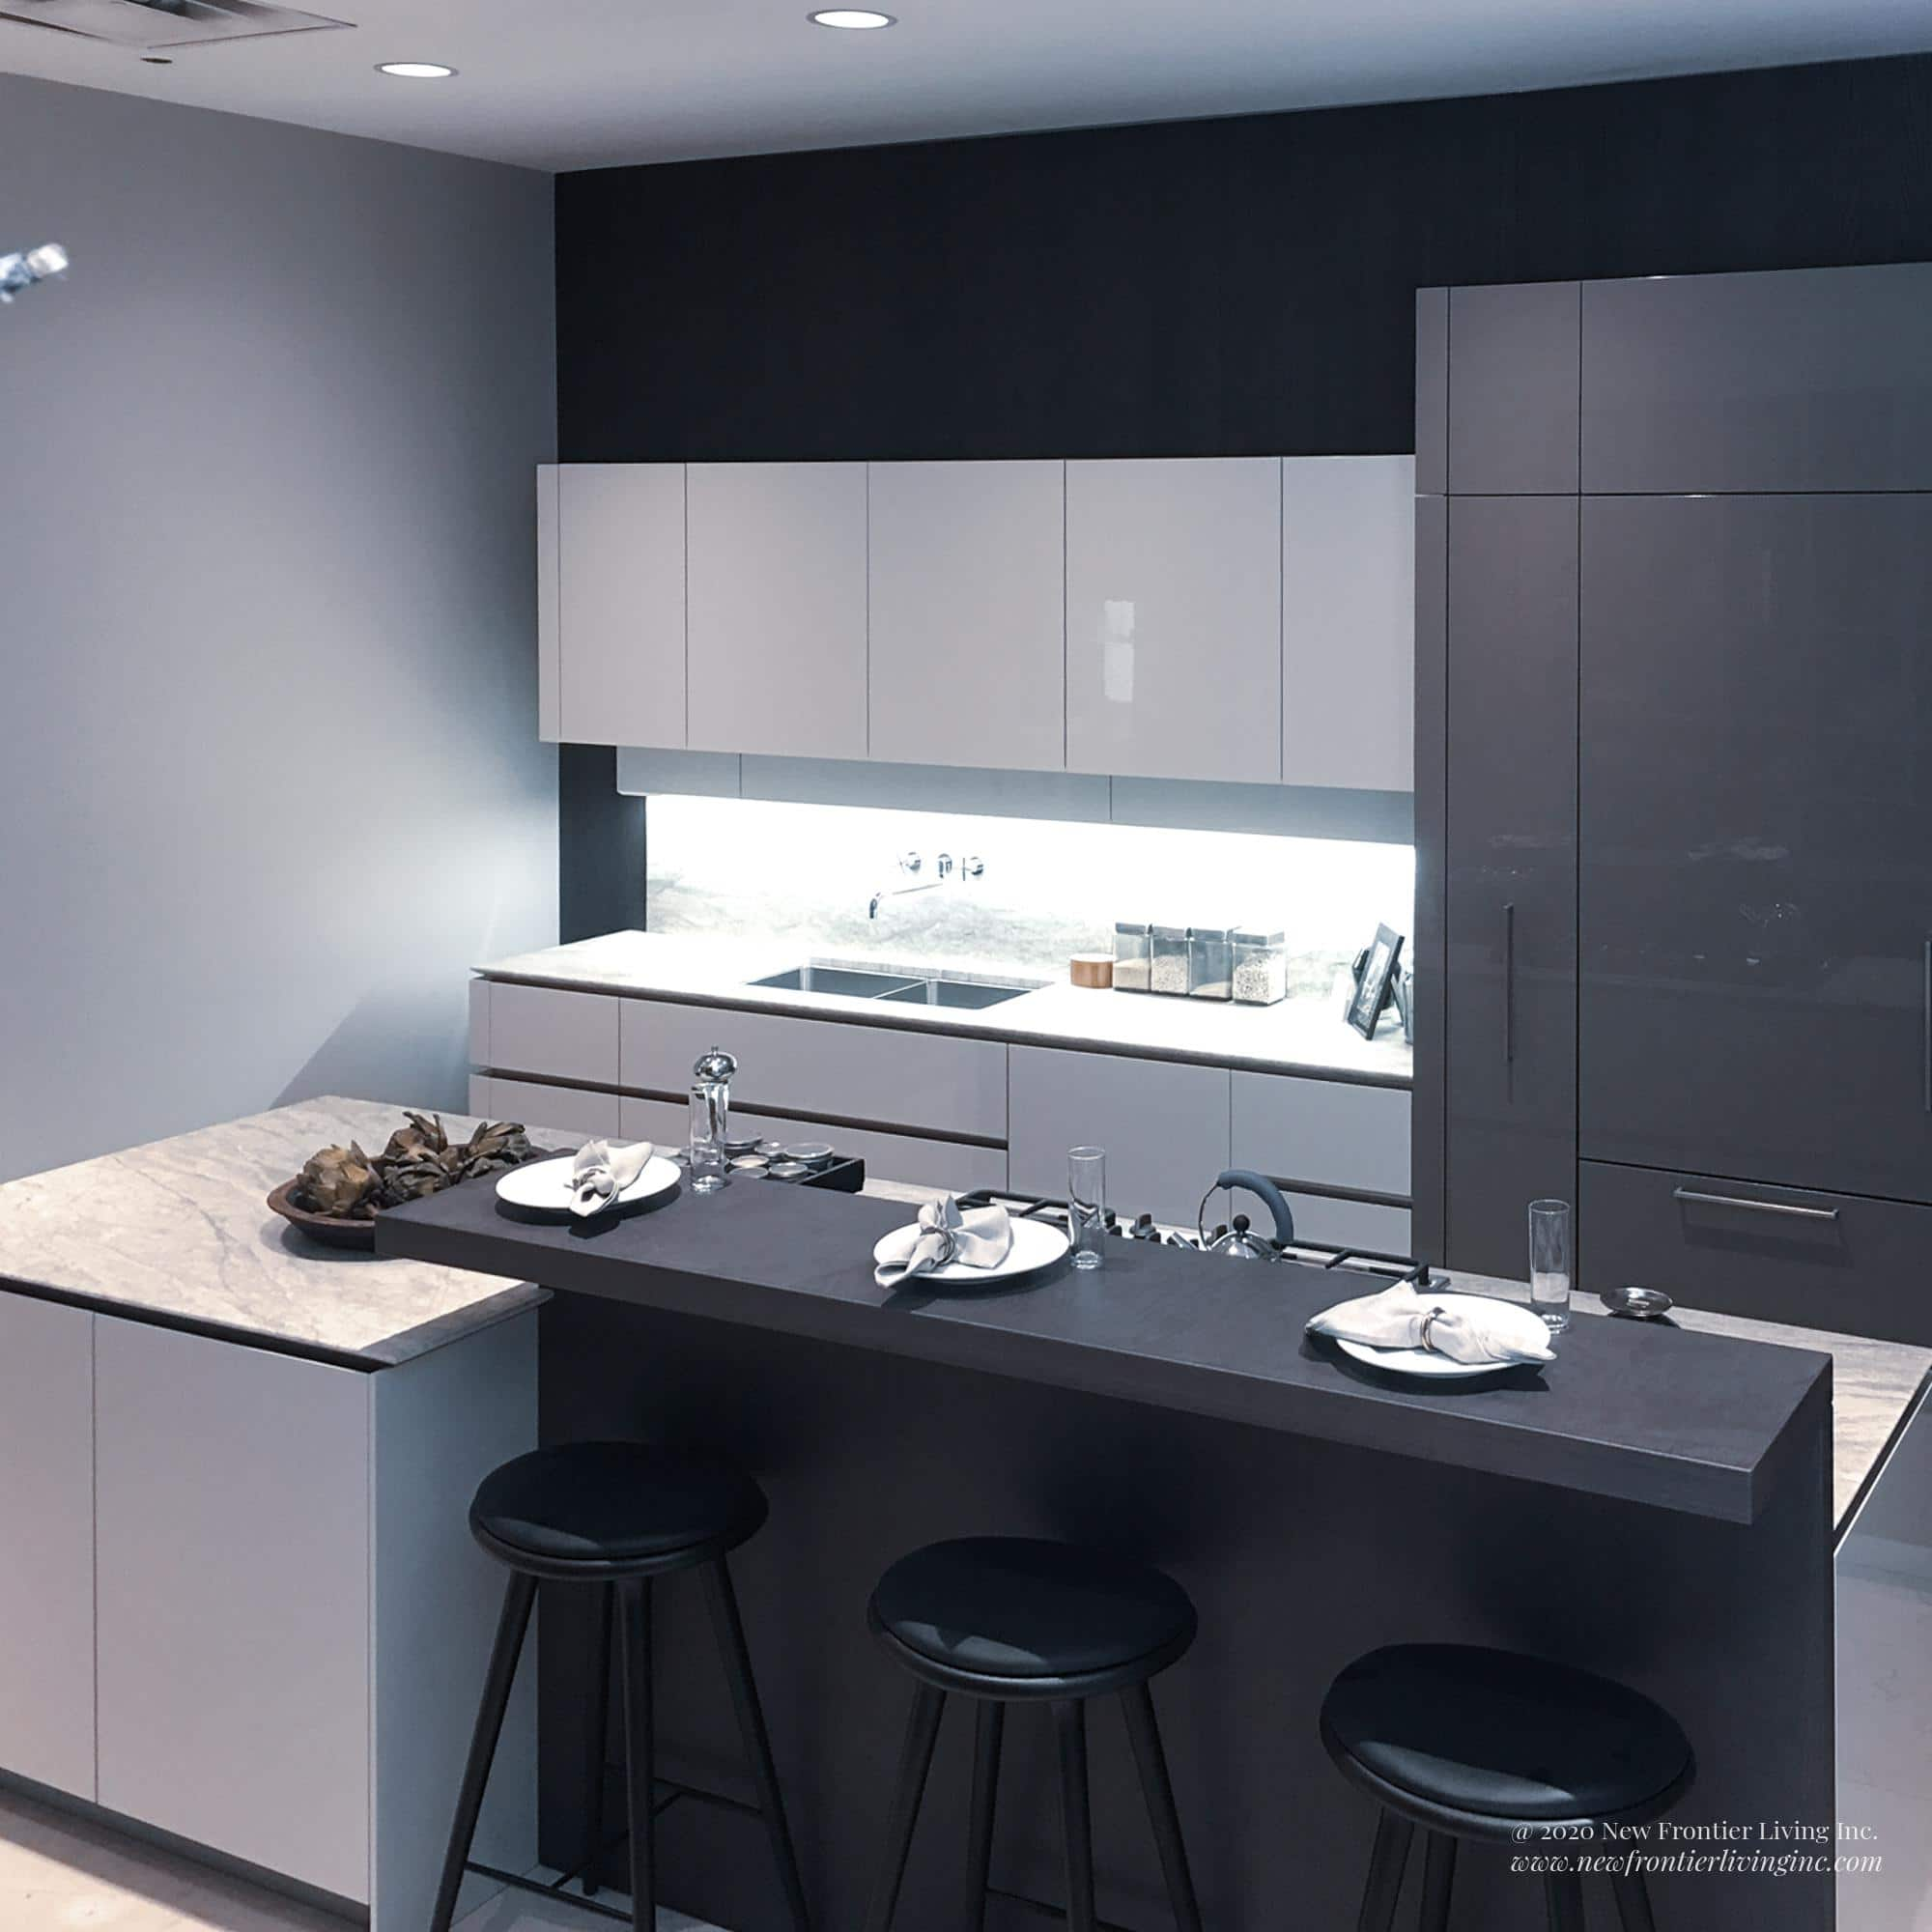 Alternative black and white kitchen and two islands, plates set on the black island